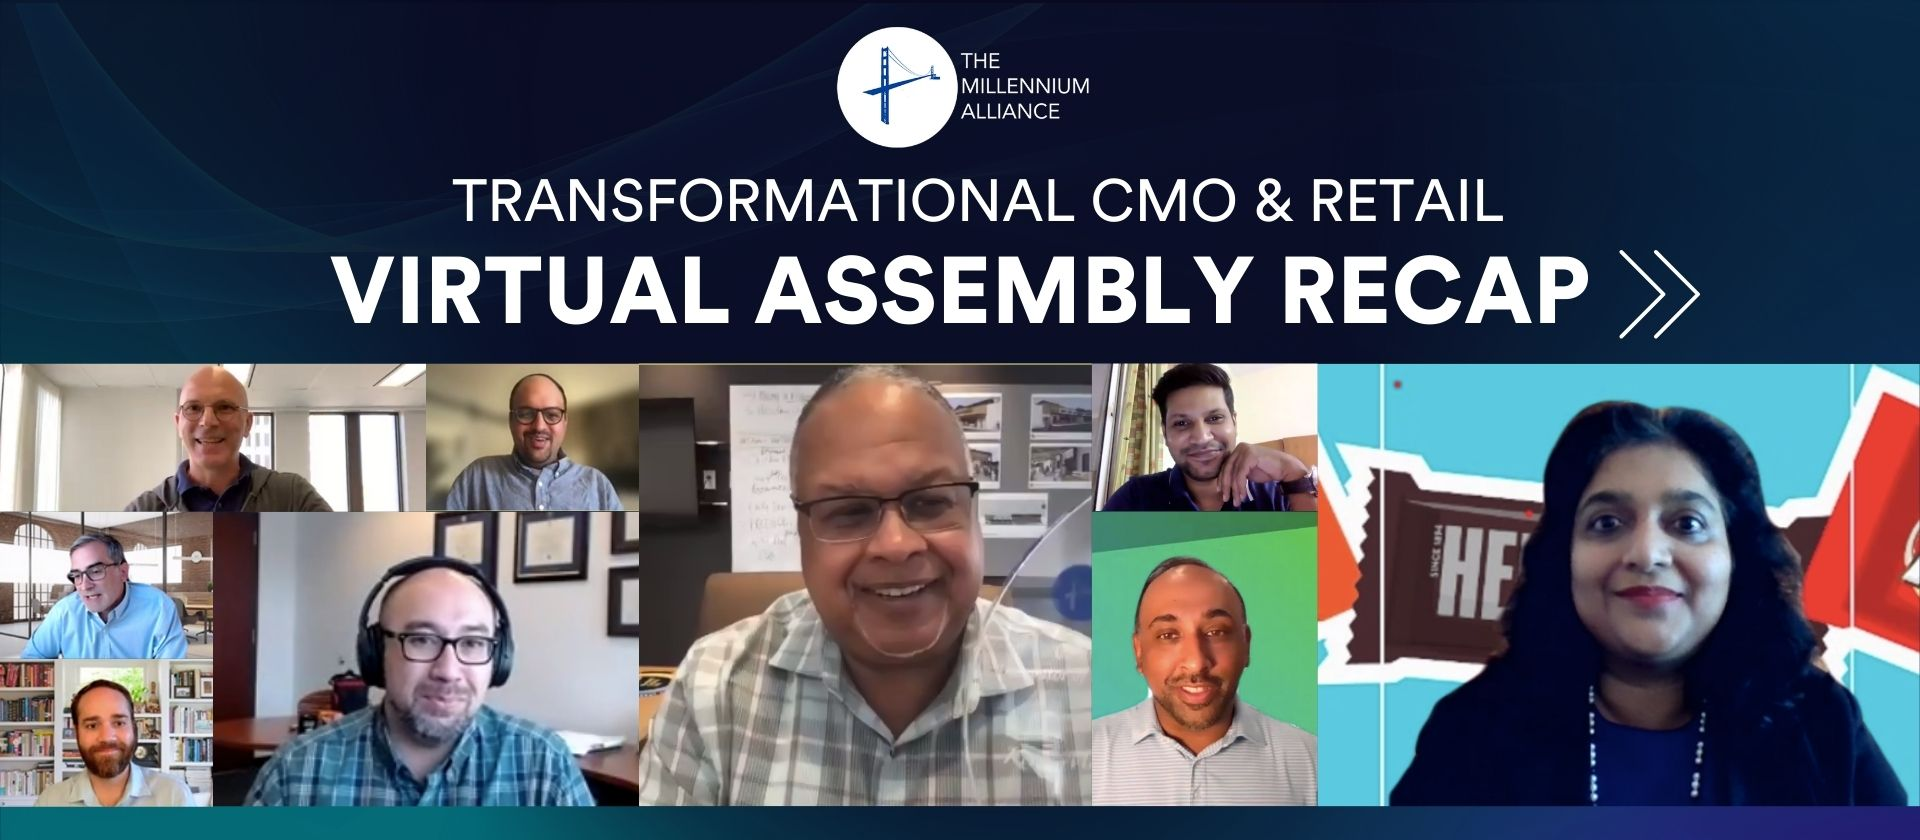 Our August Transformational CMO & Retail Assembly: Here's What You Missed